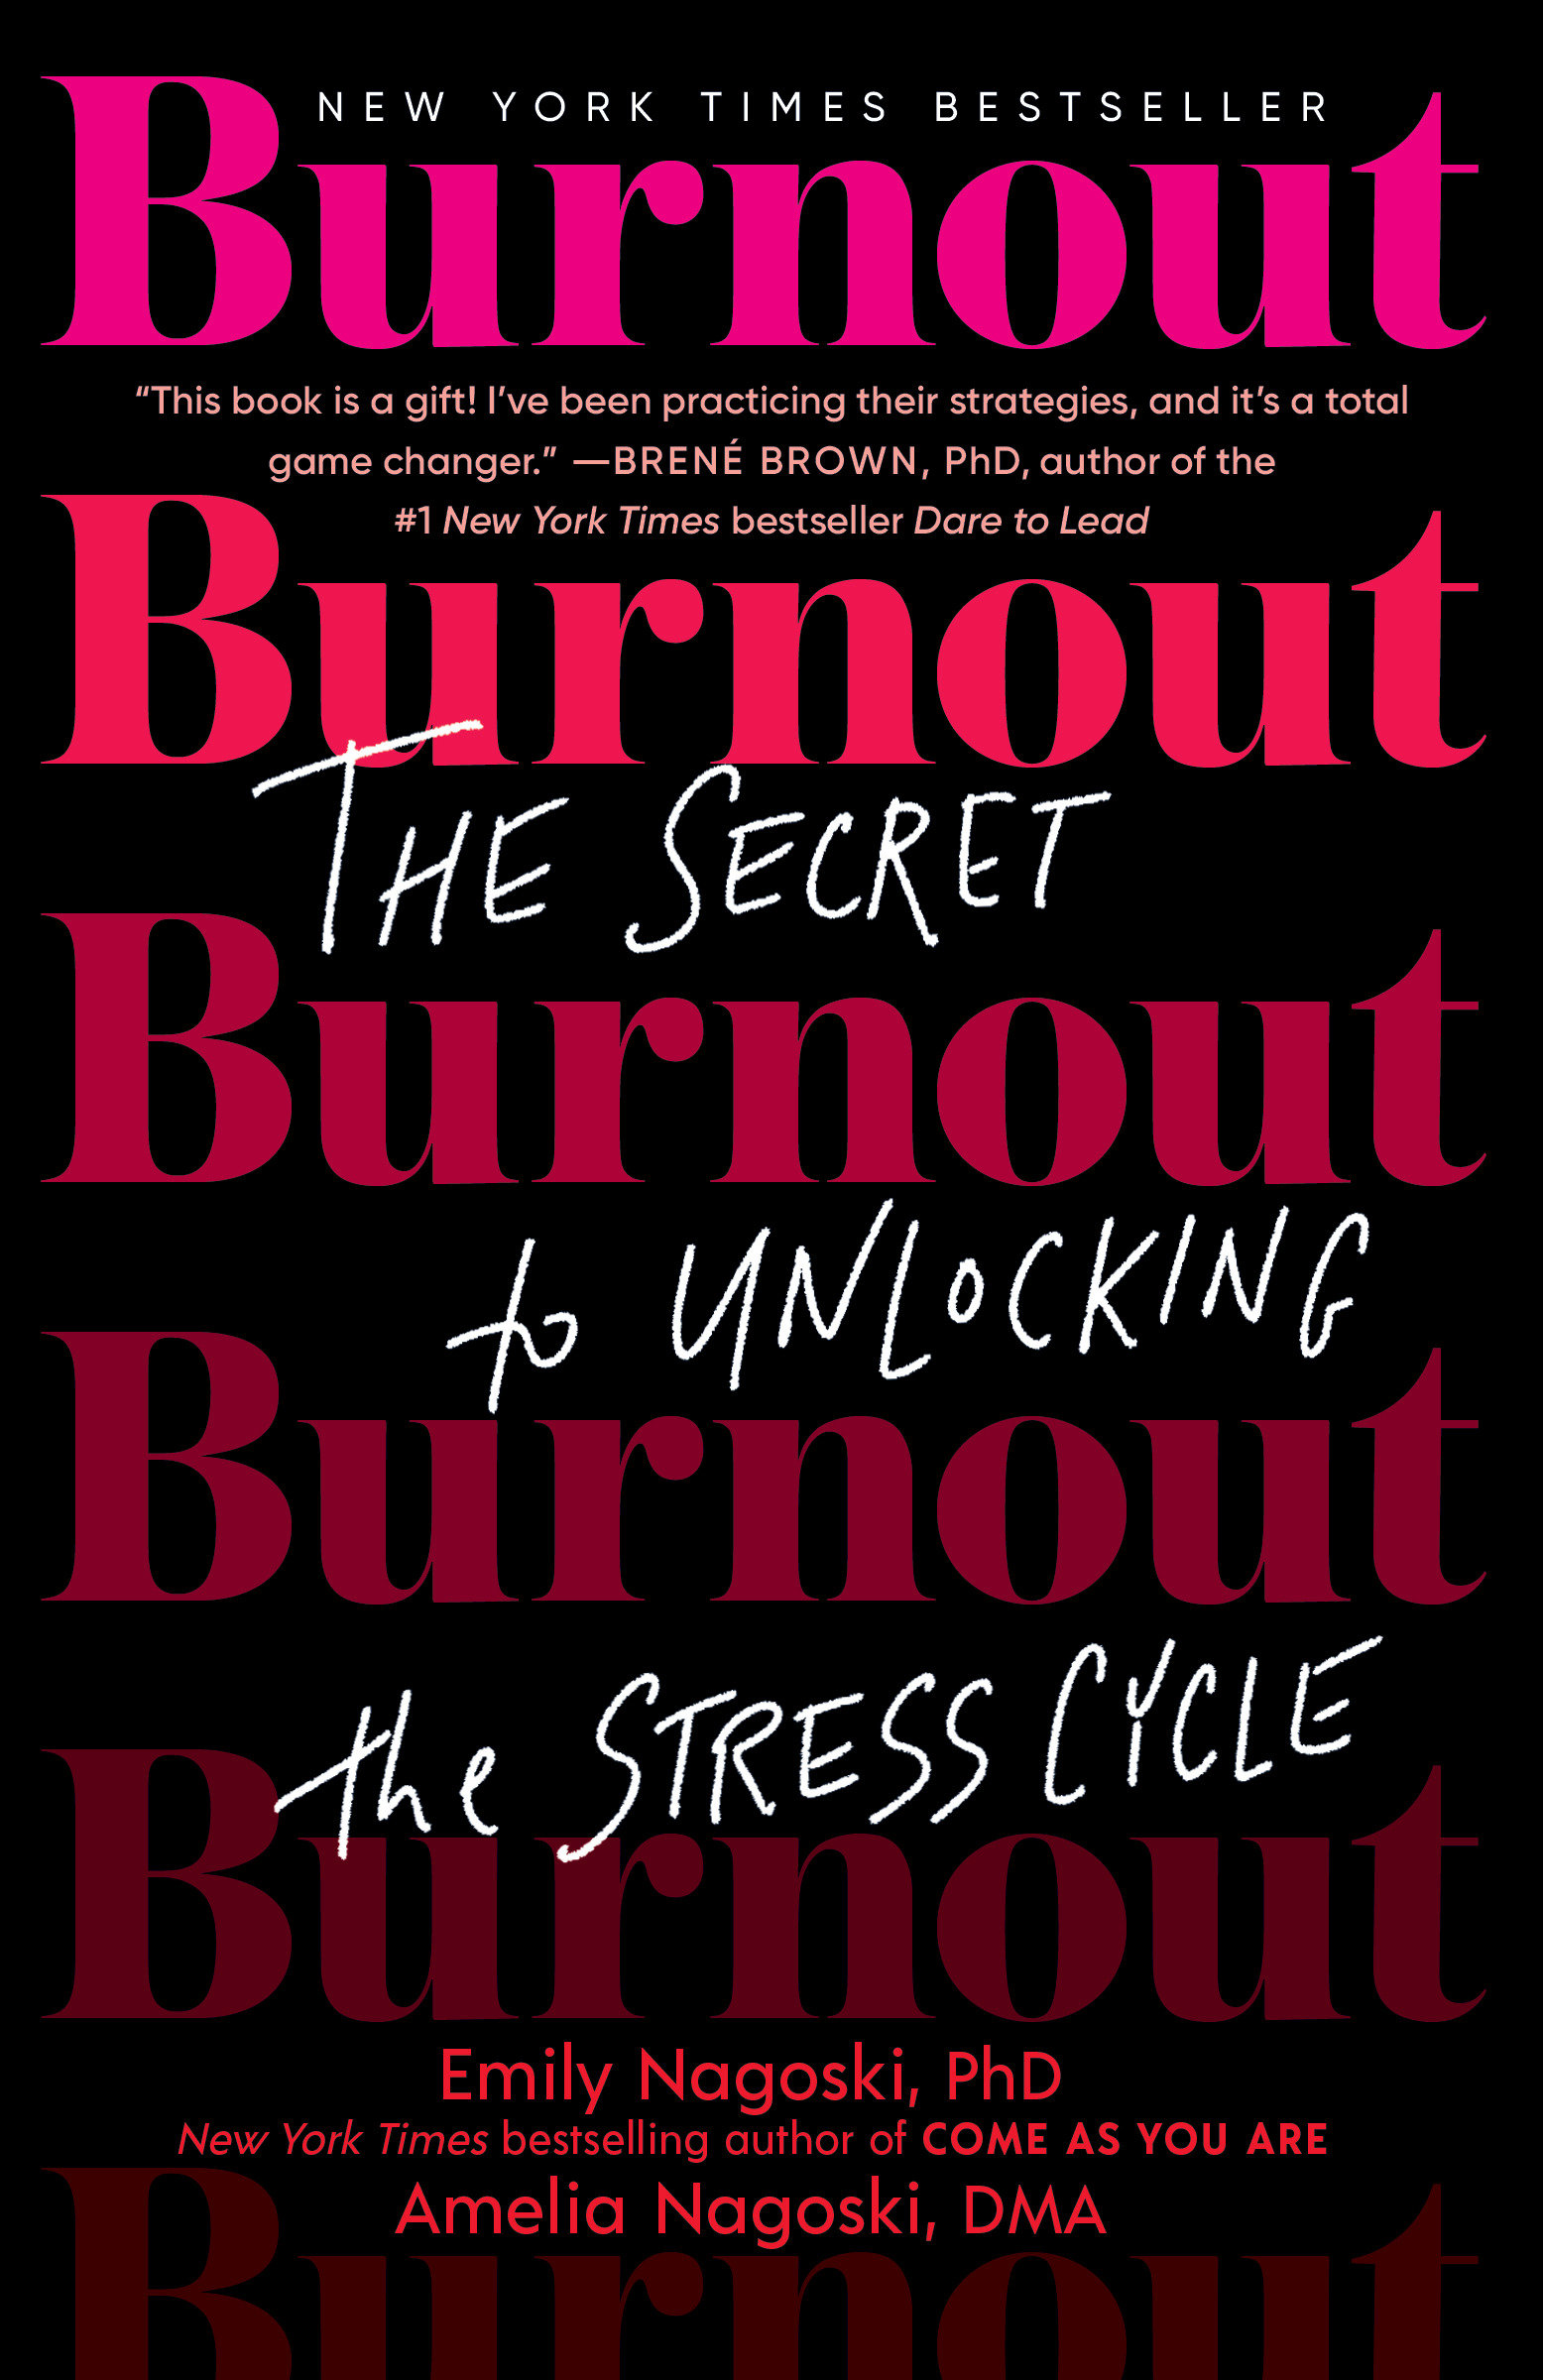 Burnout The Secret to Unlocking the Stress Cycle